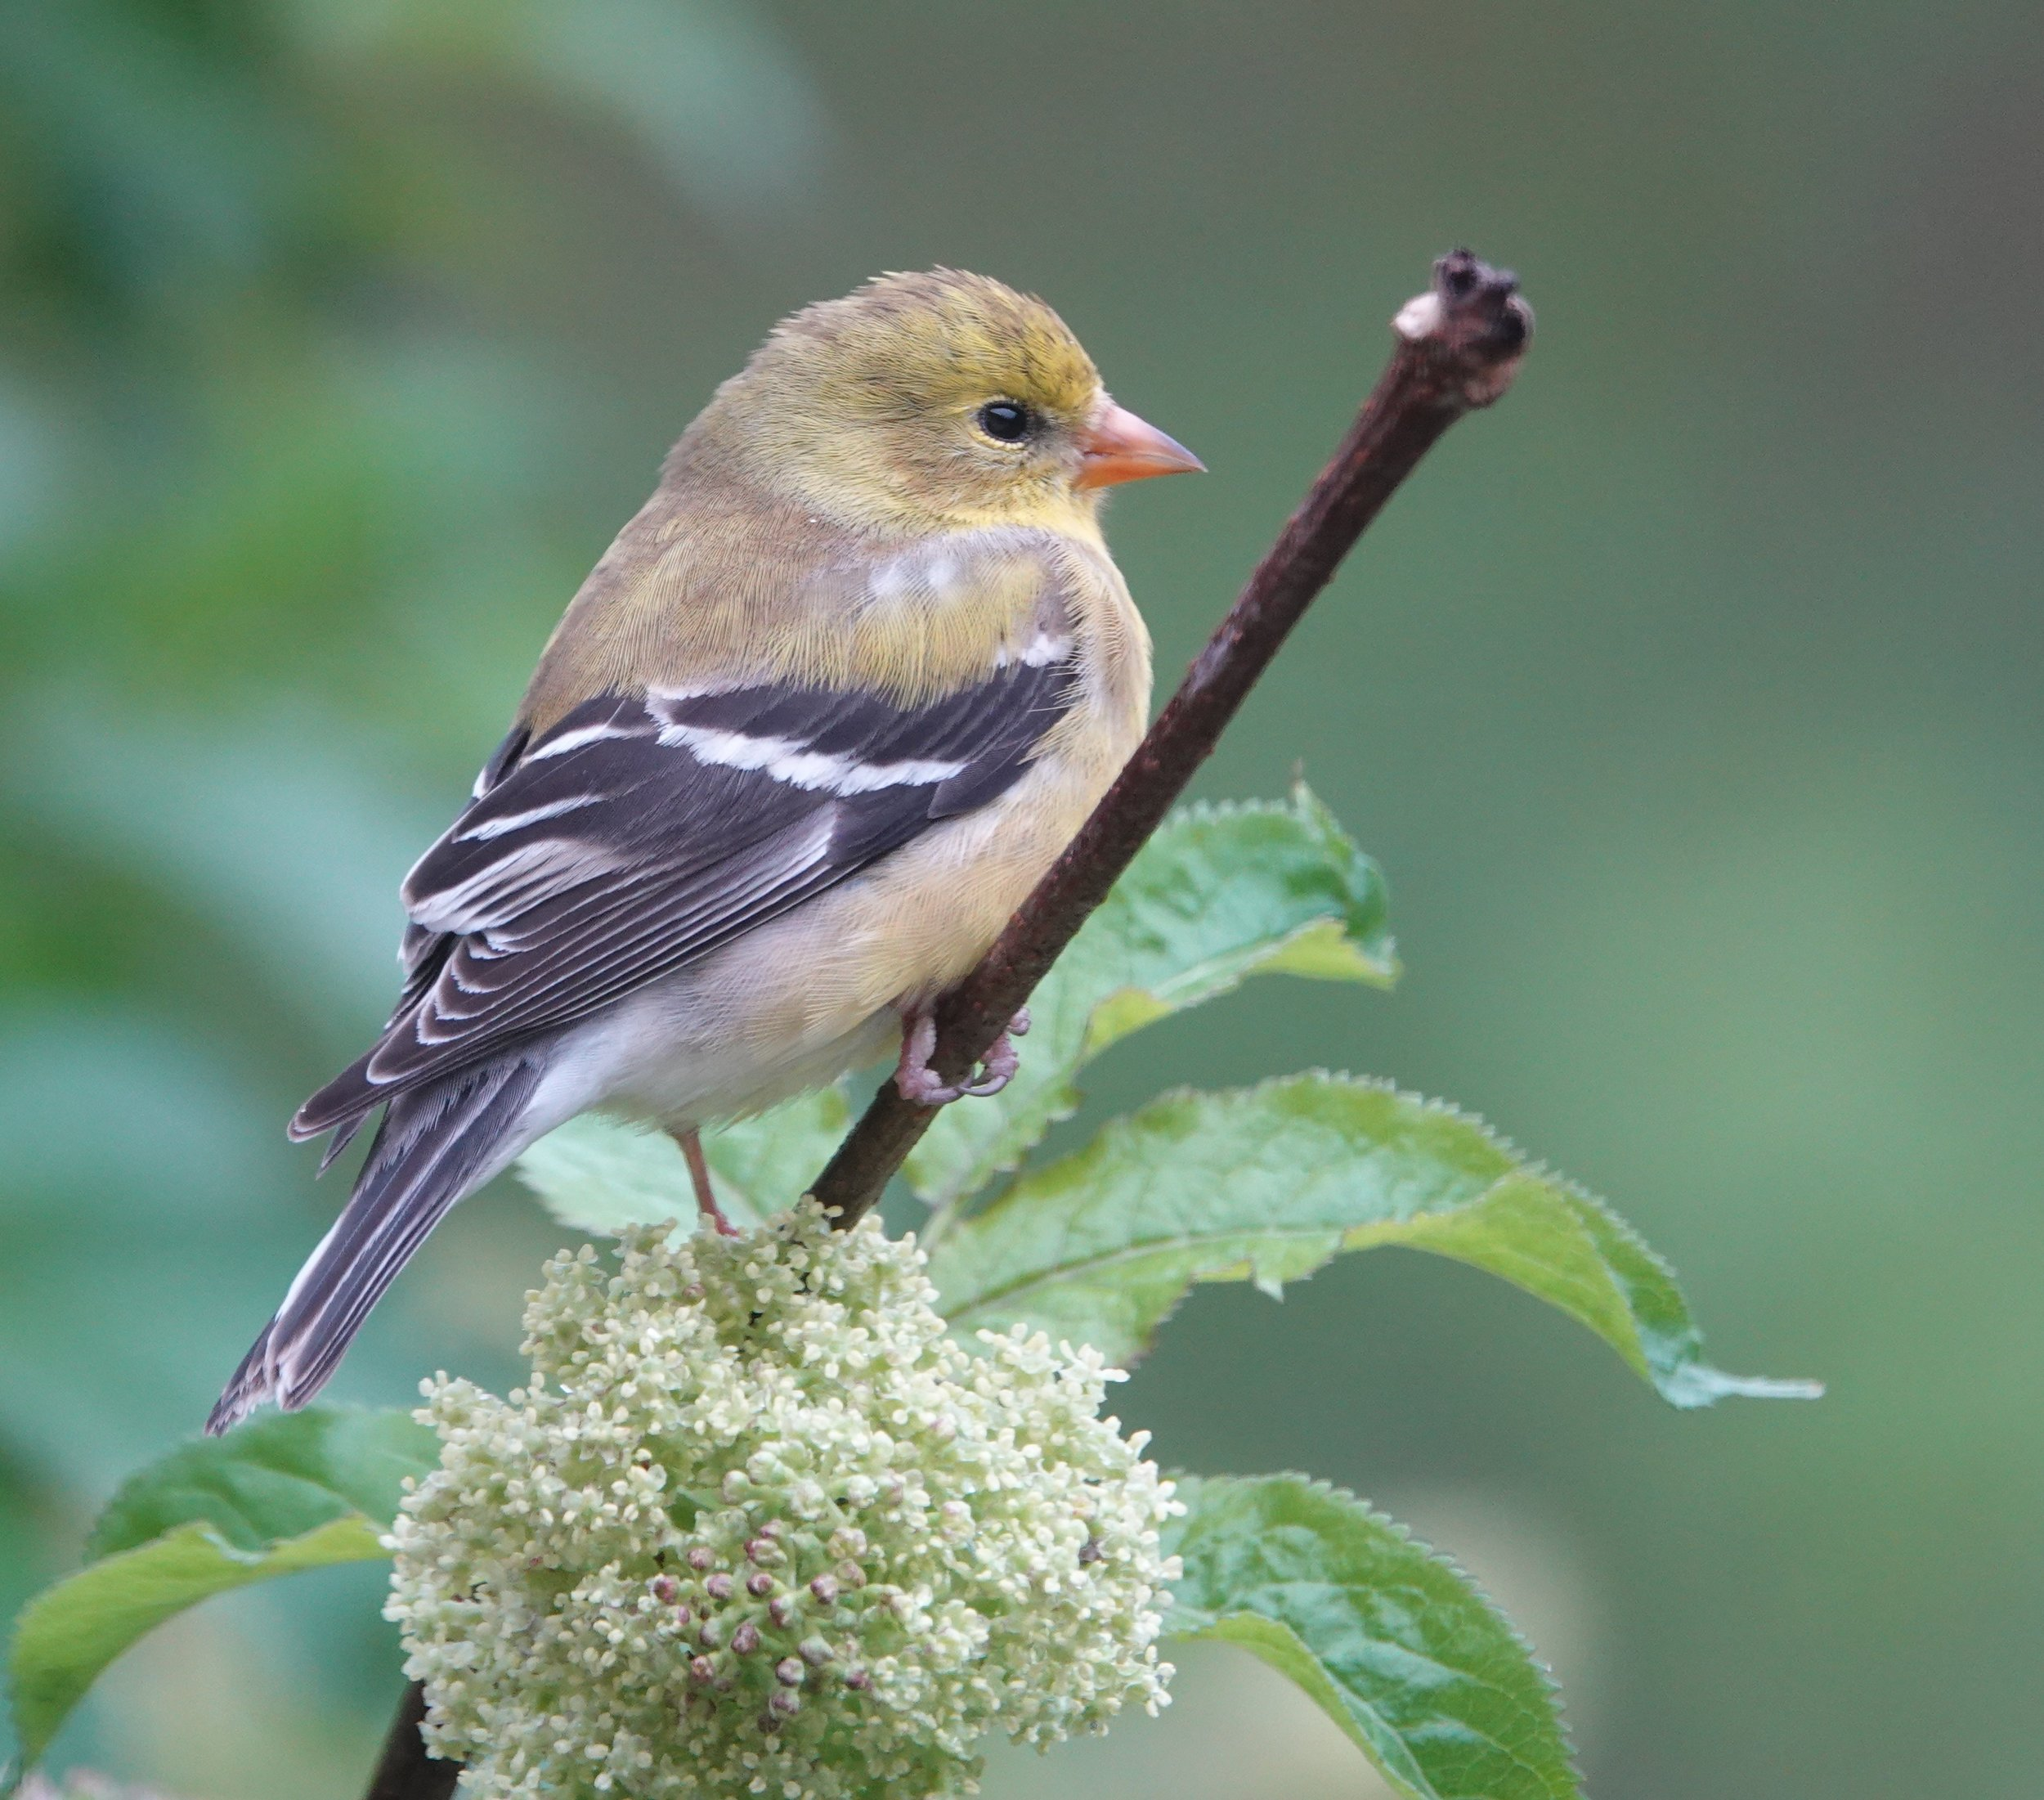 This female American goldfinch eats seeds almost exclusively.